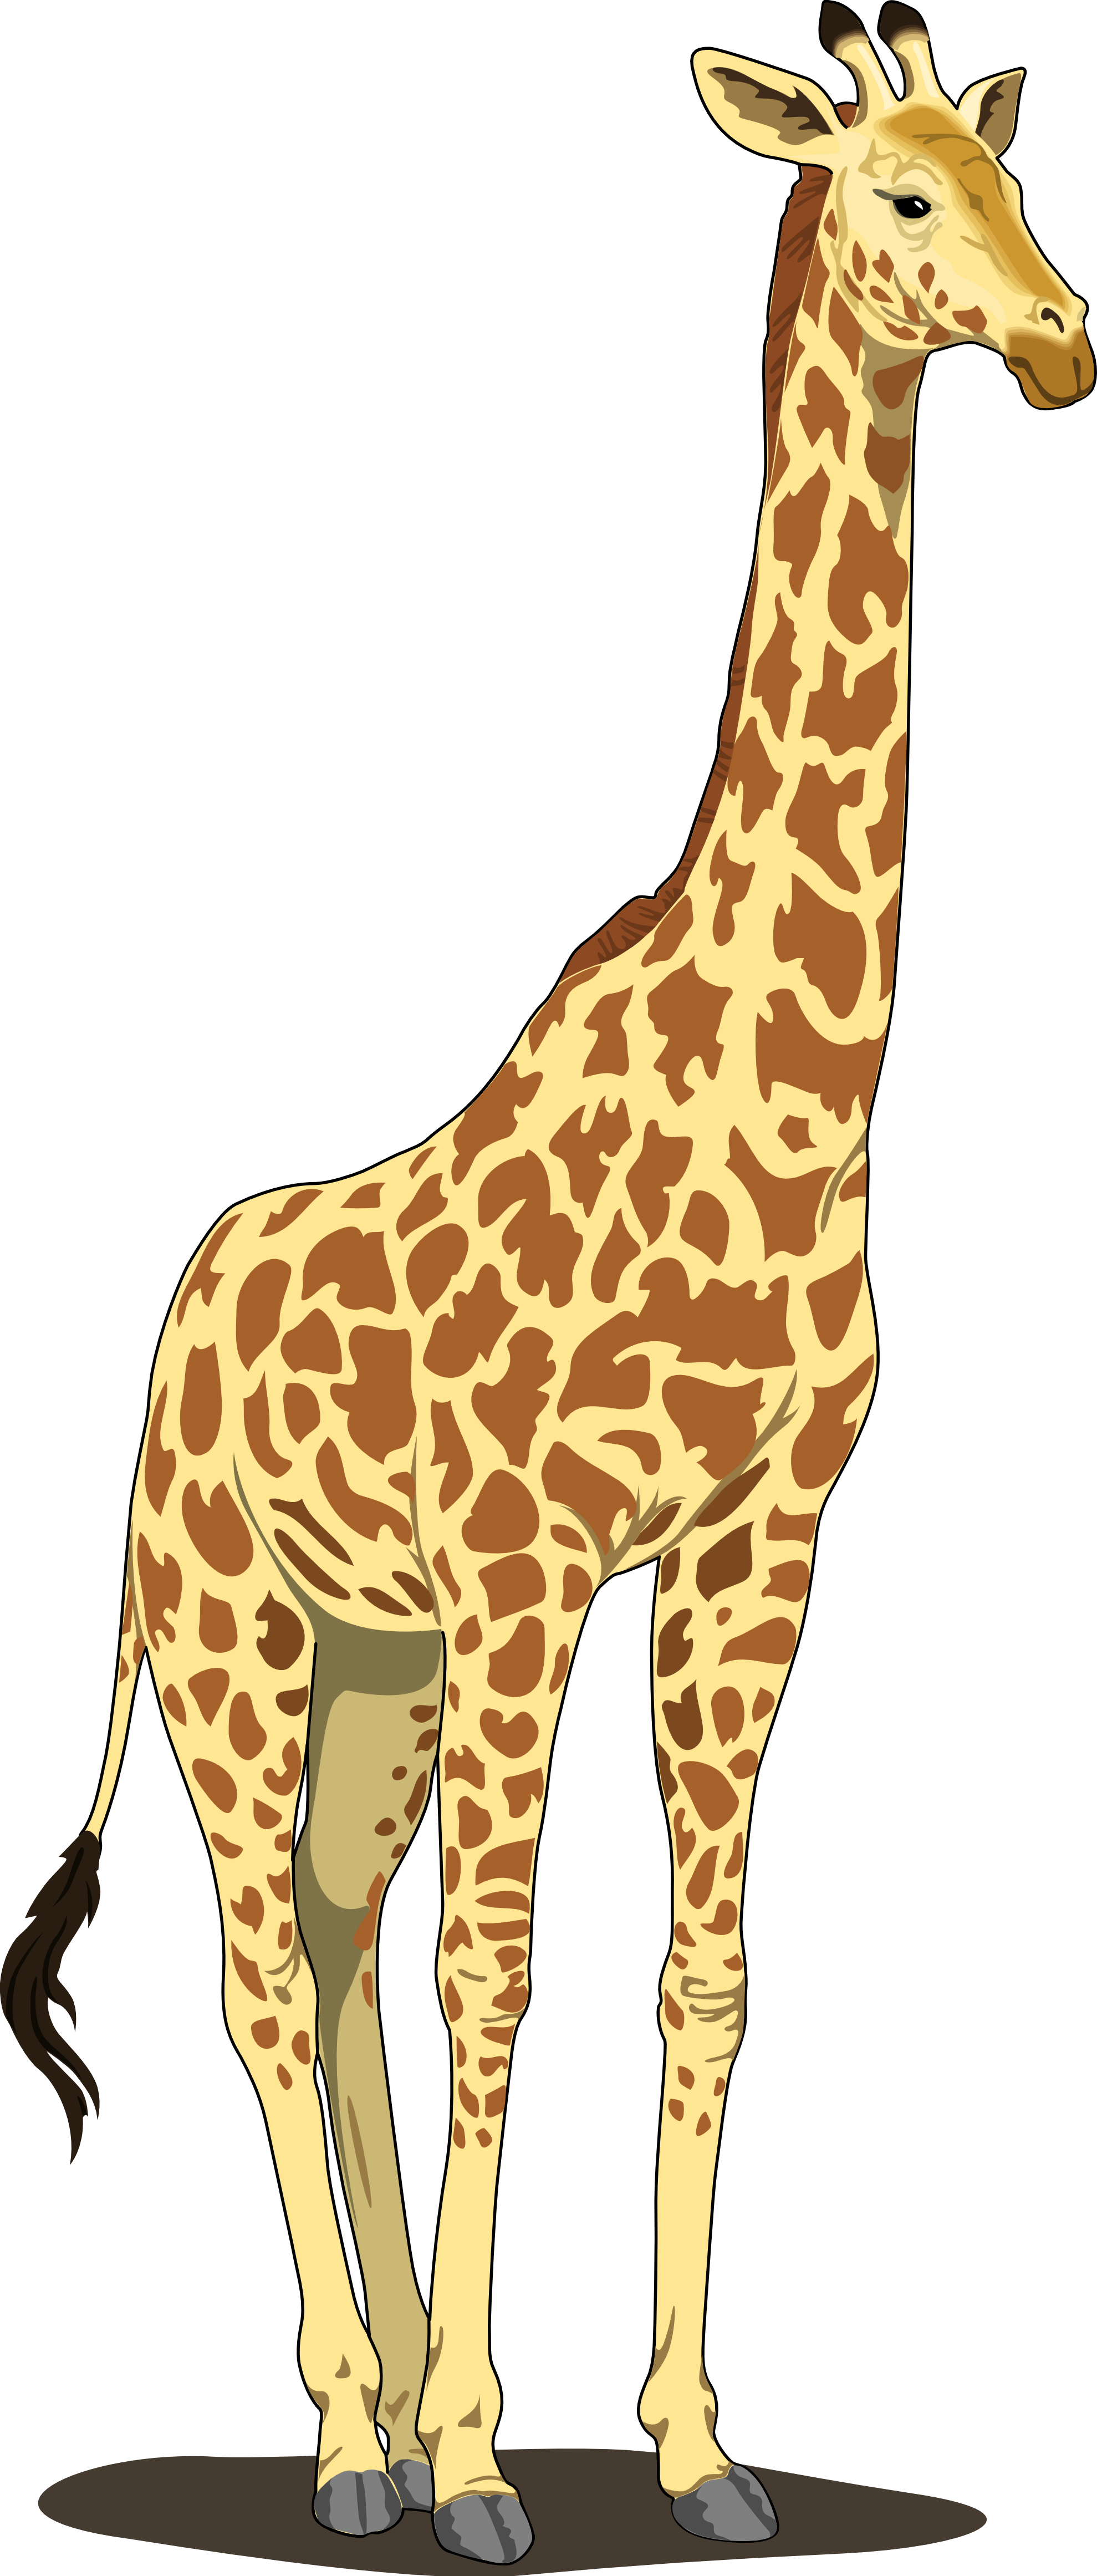 Giraffe png transparent.